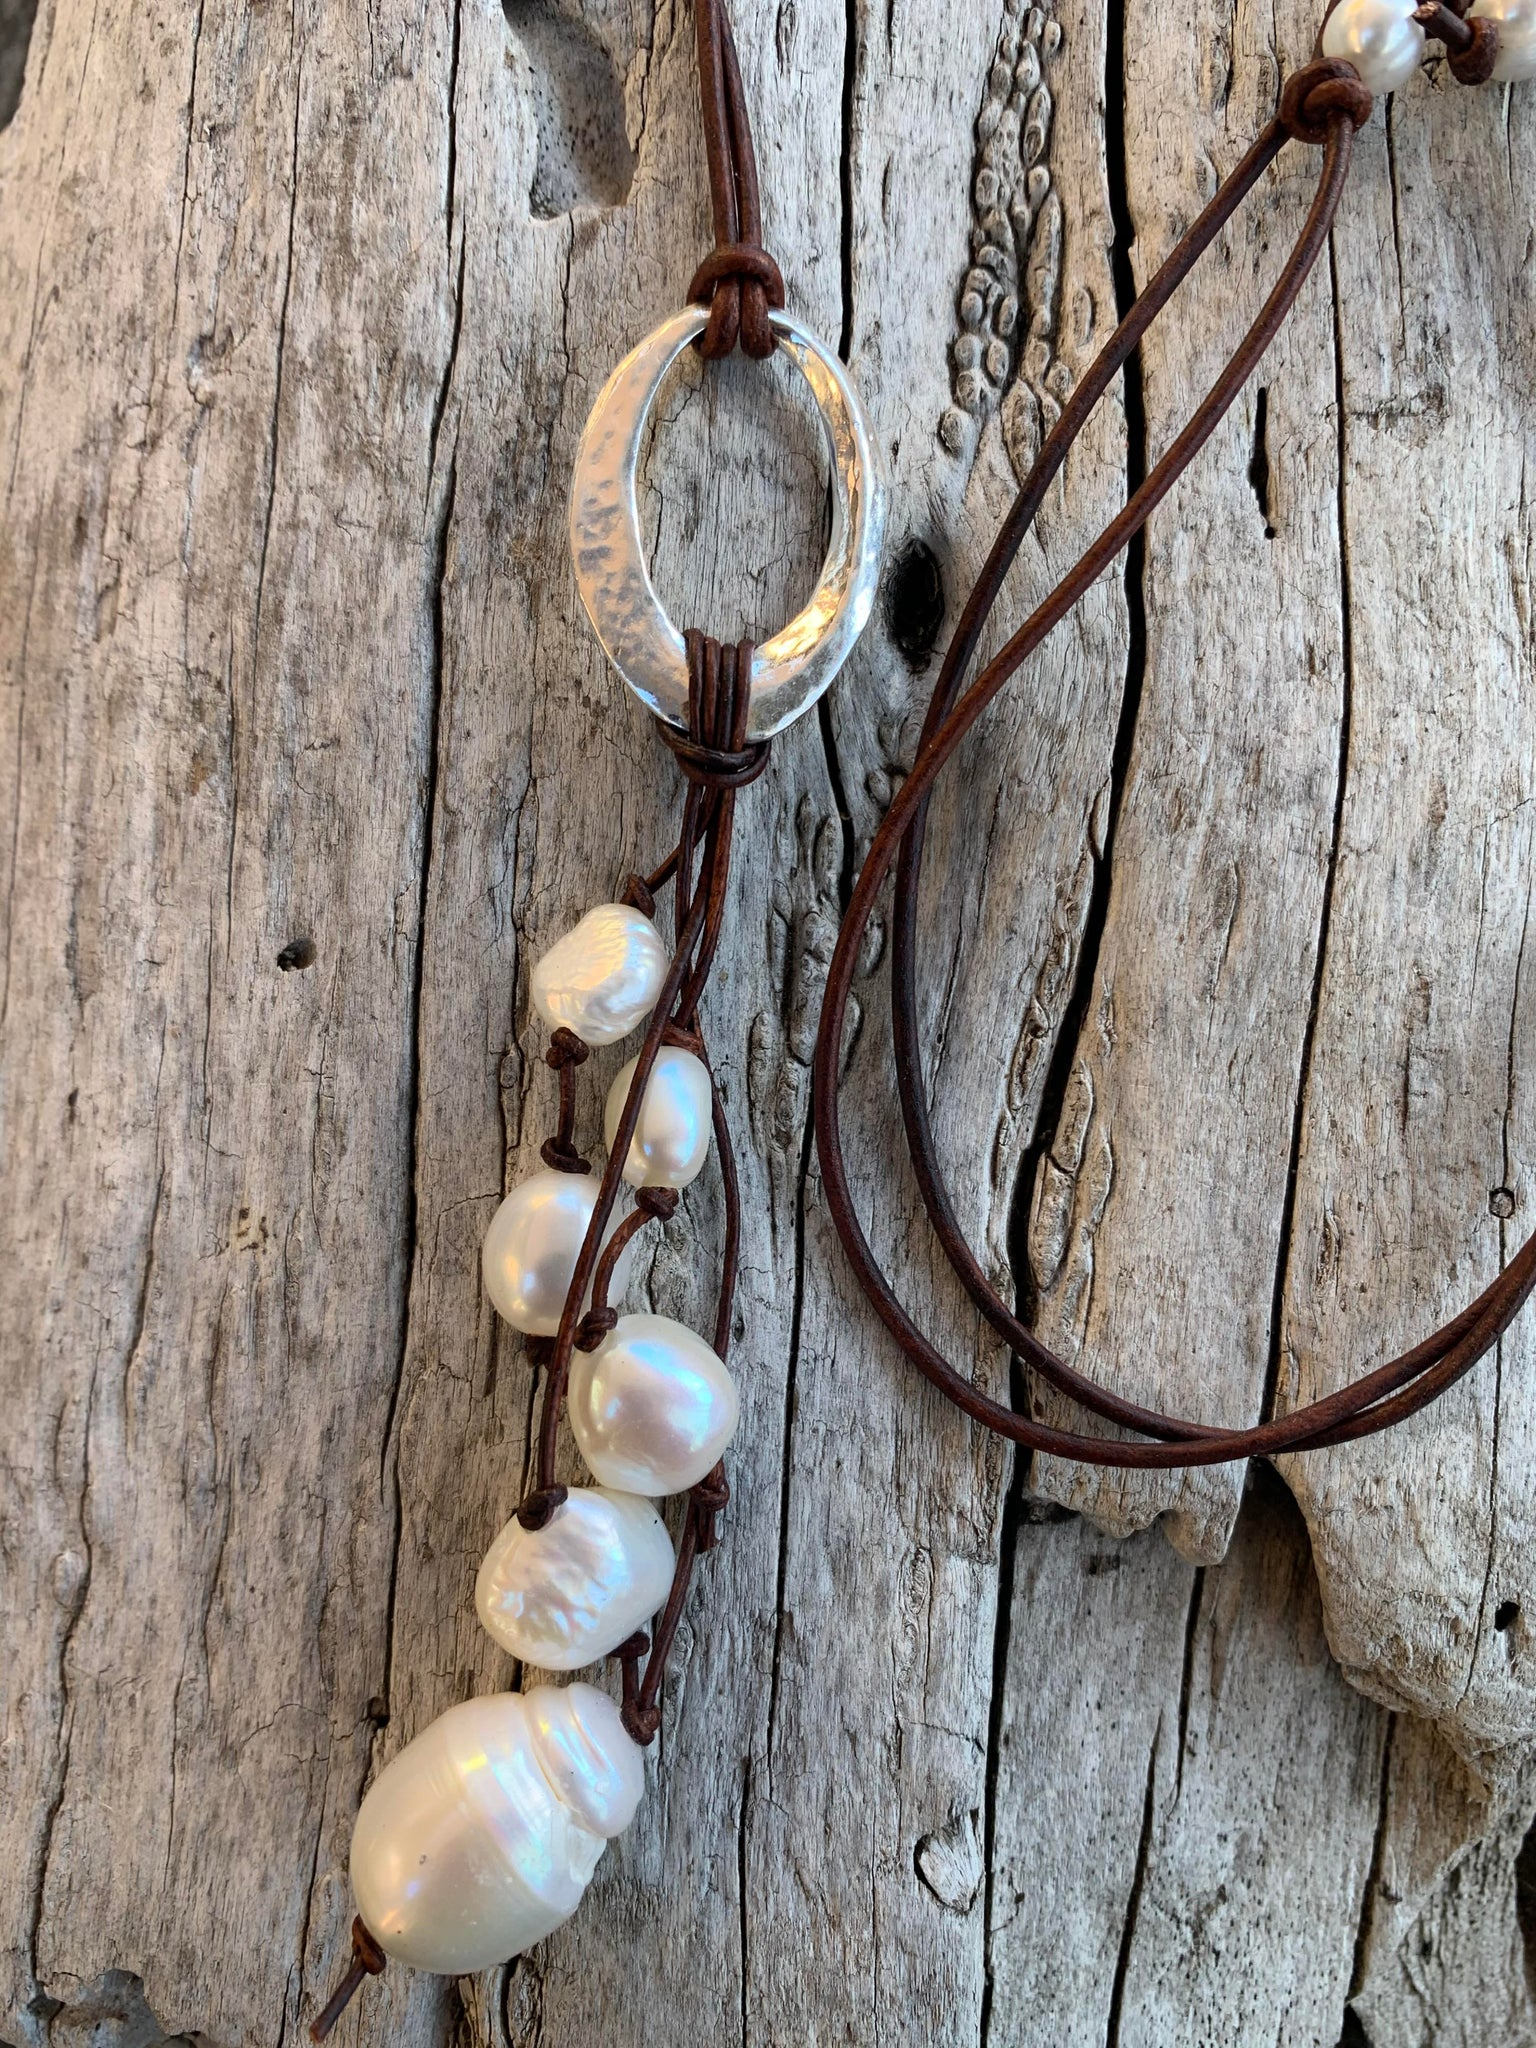 Handmade Sterling Silver Organic Hammered Oval Leather Adjustable Long Lariat Necklace with Freshwater Pearl Cluster